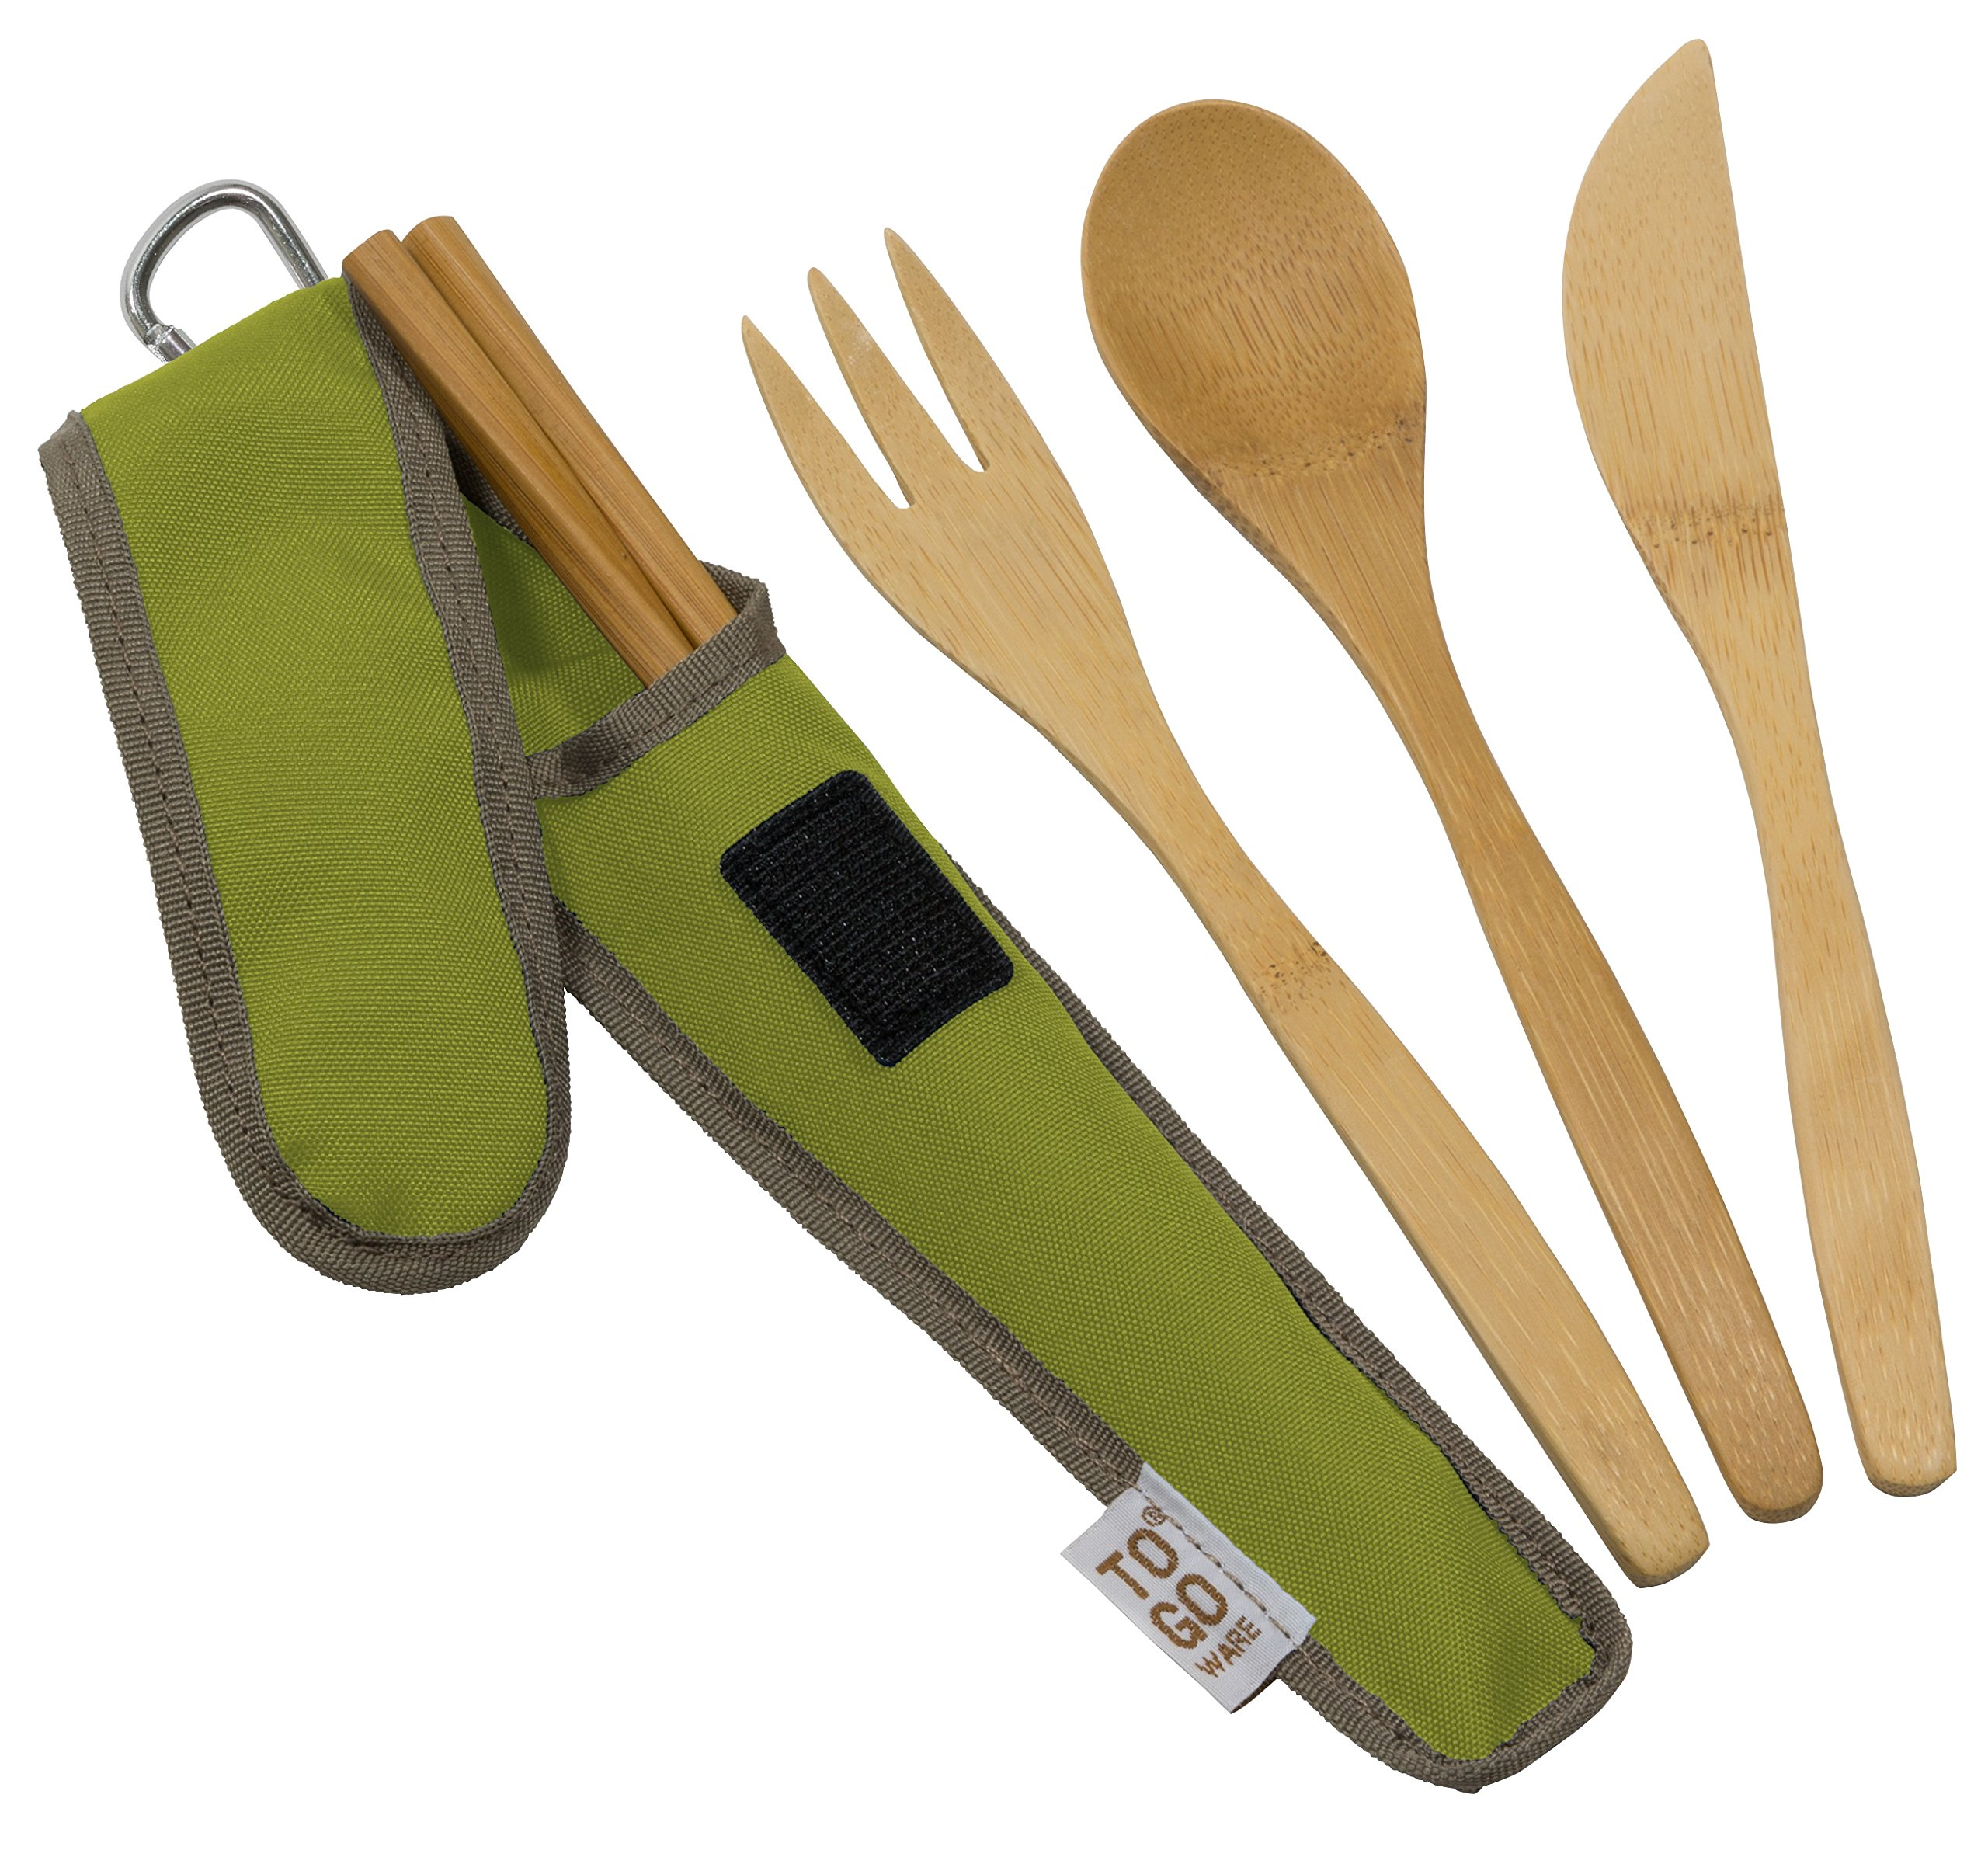 Bamboo Travel Utensils - To-Go Ware Utensil Set with Carrying Case (Avocado) (705105479308)